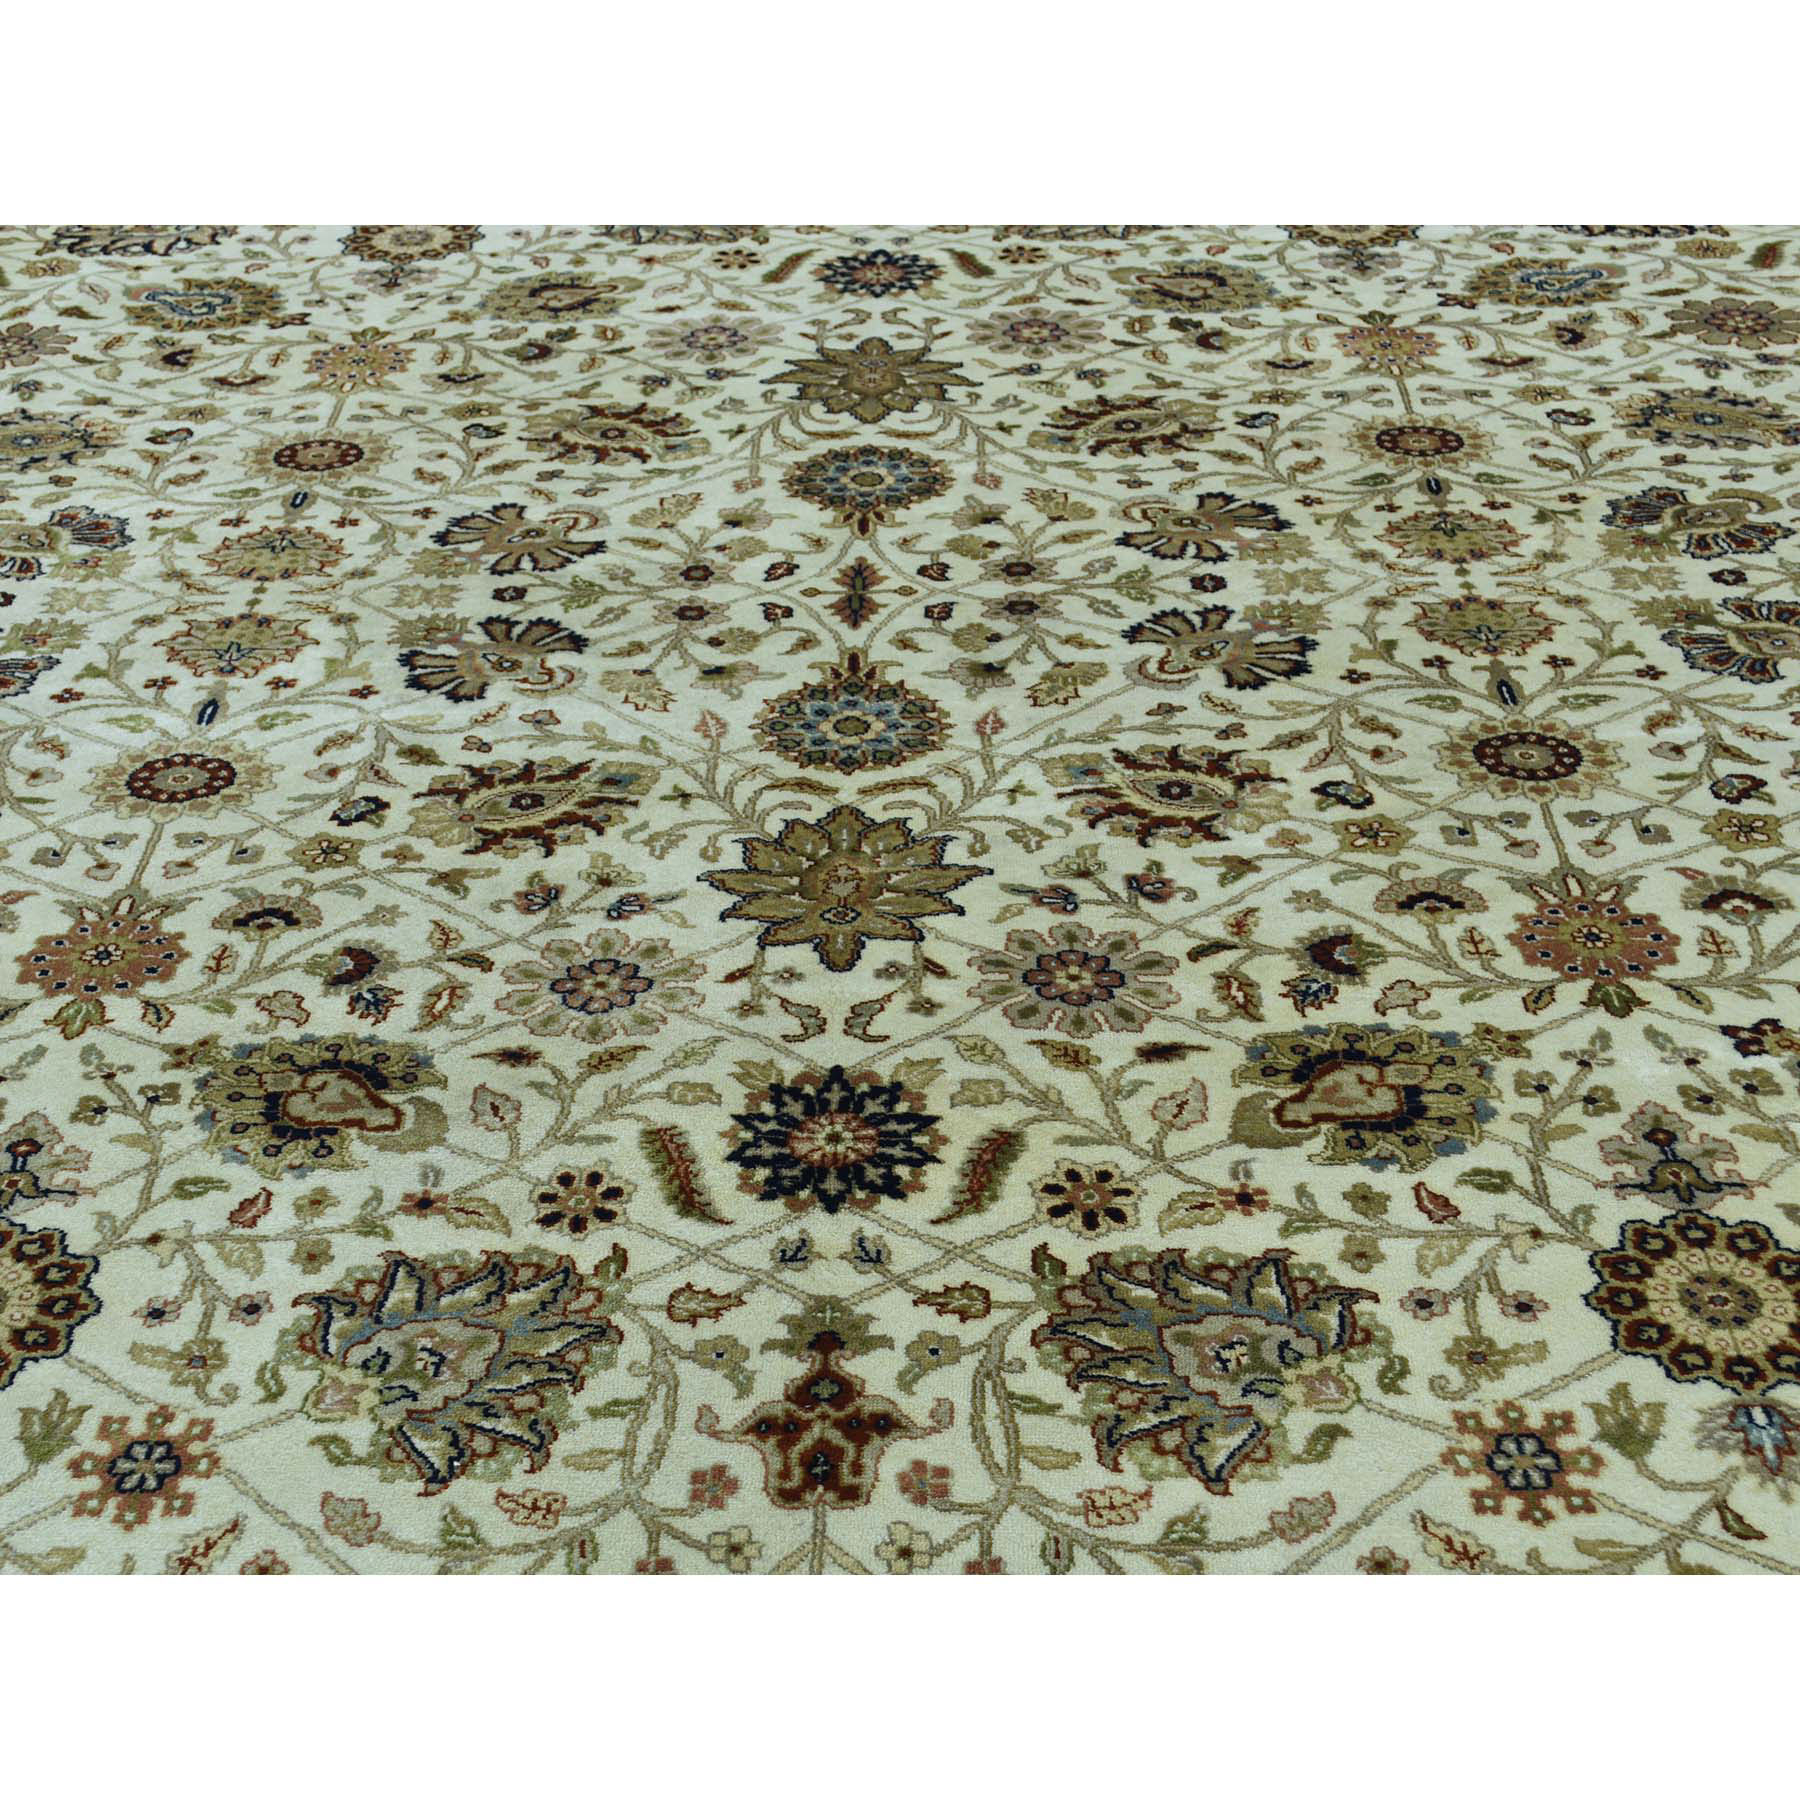 10-2 x13-7  Fine Oriental Pure Wool Antiqued Tabriz Hand-Knotted Rug